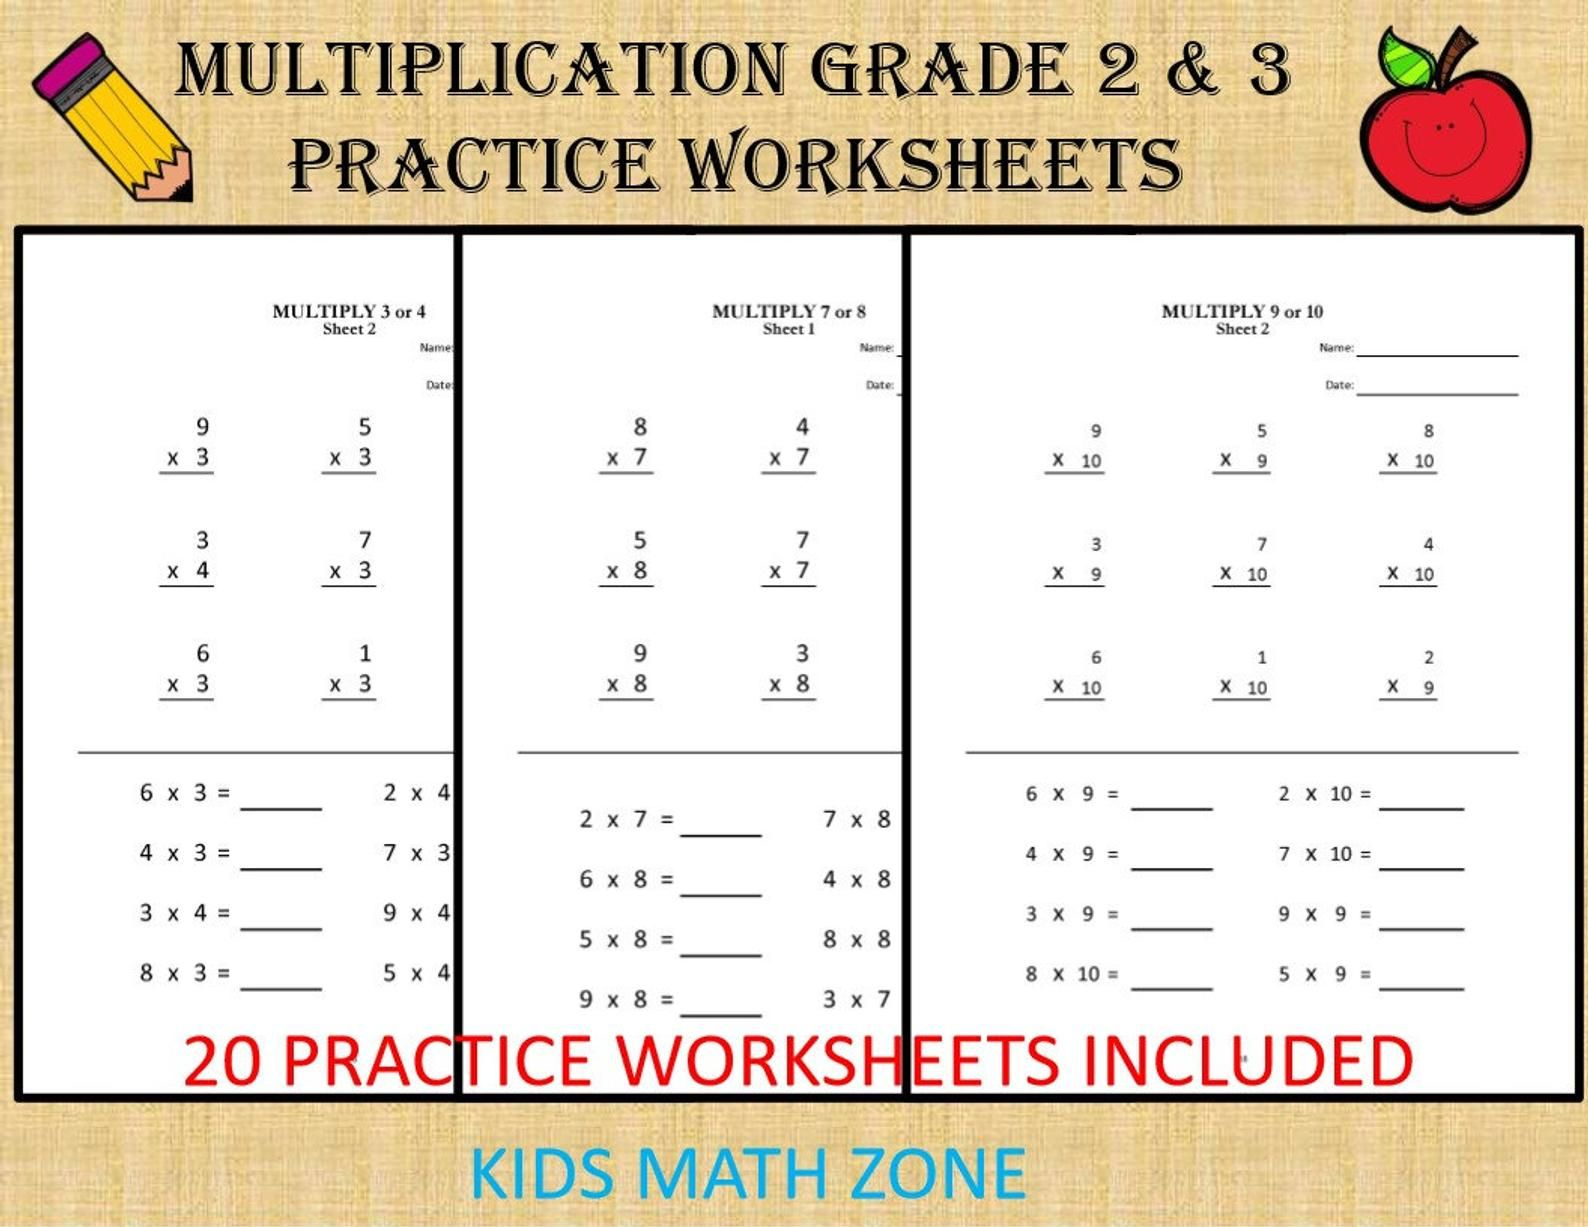 Multiplication Worksheets For Grade 2 3 20 Sheets Pdf Etsy Multiplication Worksheets 2nd Grade Worksheets Math Workbook